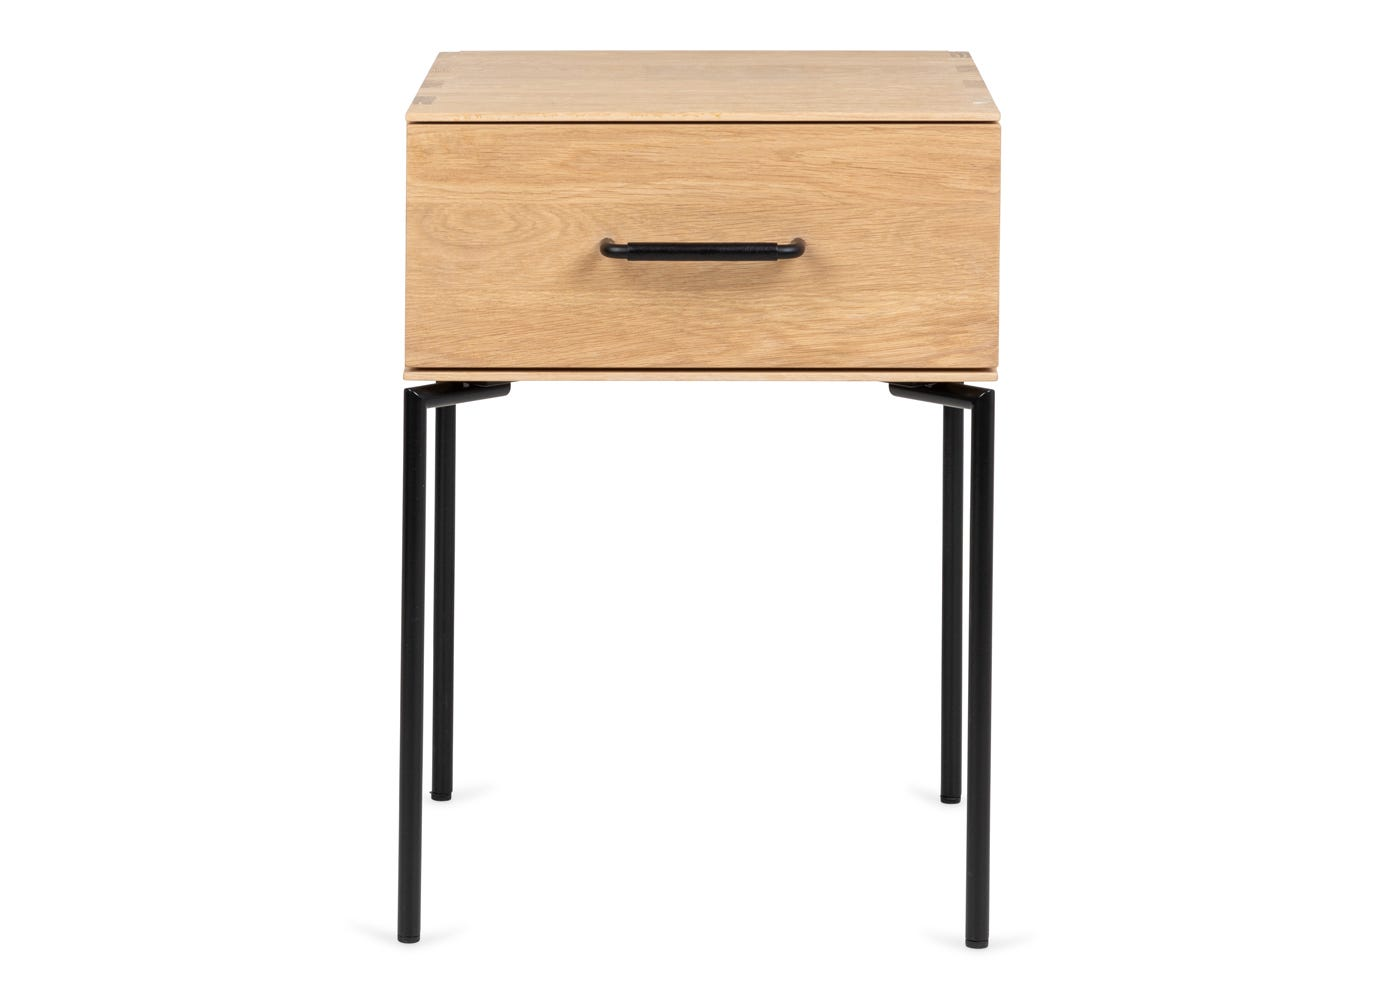 As shown: Marano bedside table - Front profile.